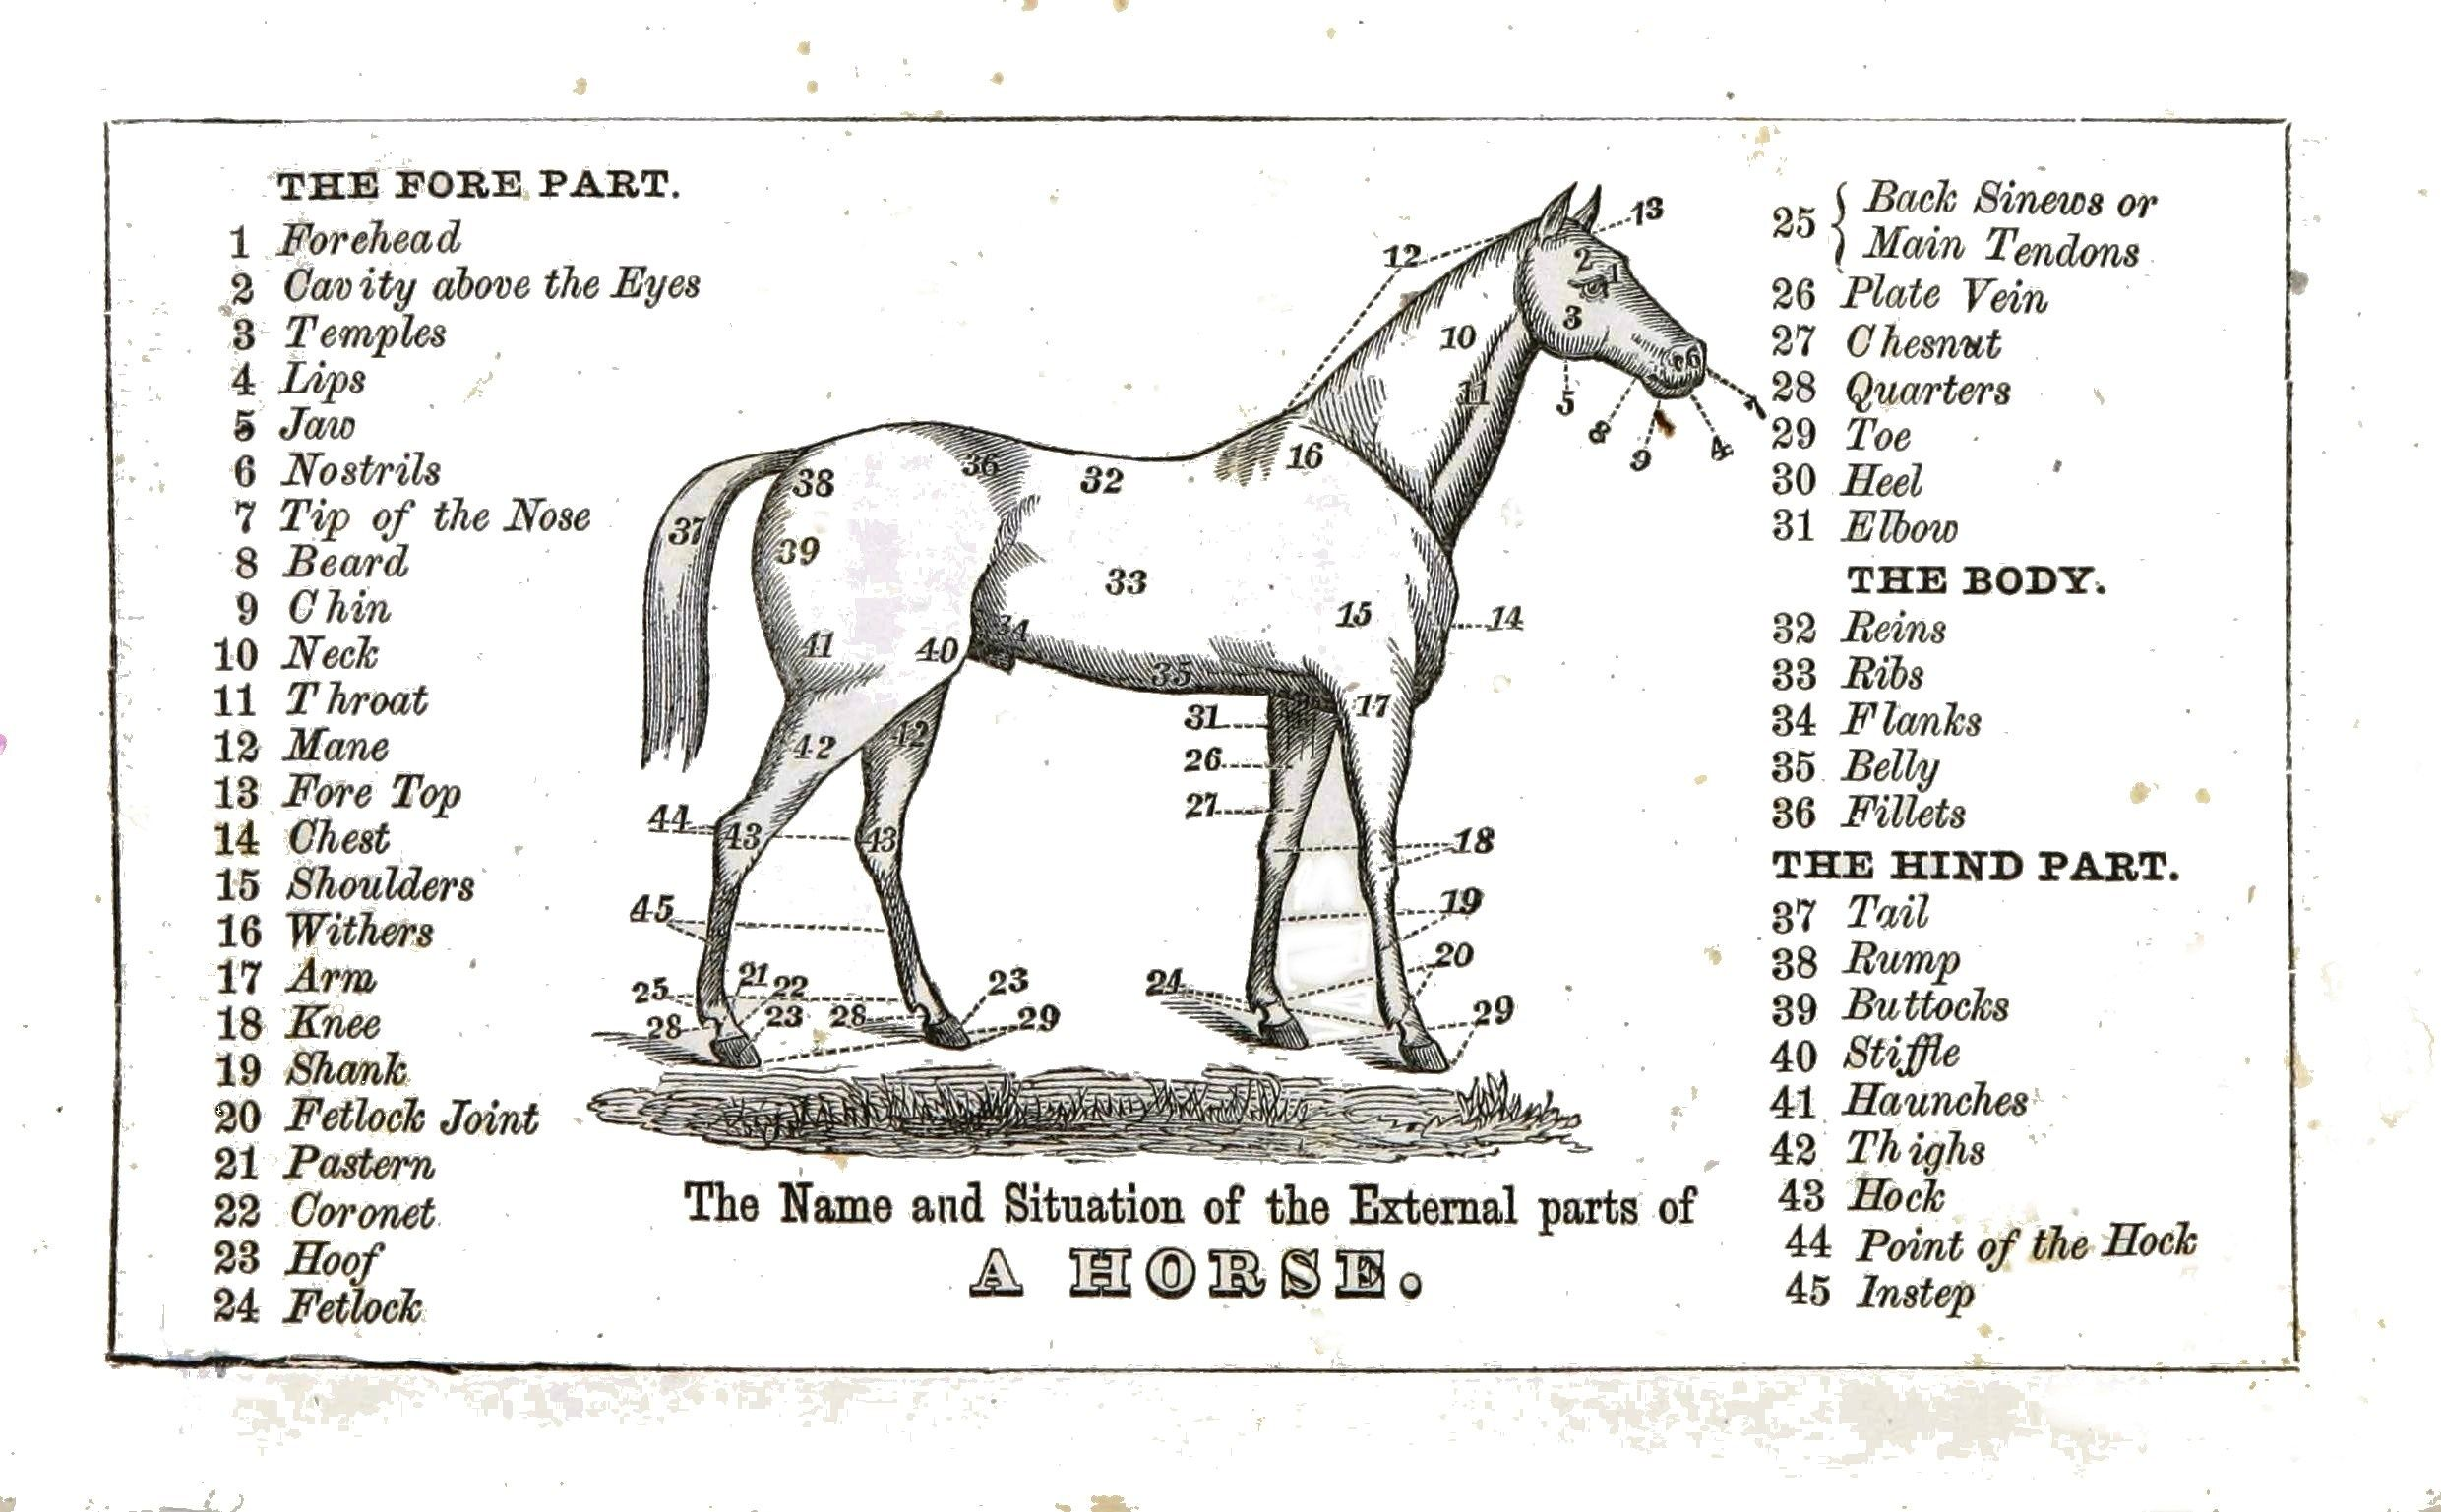 horse body parts chart Establishment Equine Etiquette or